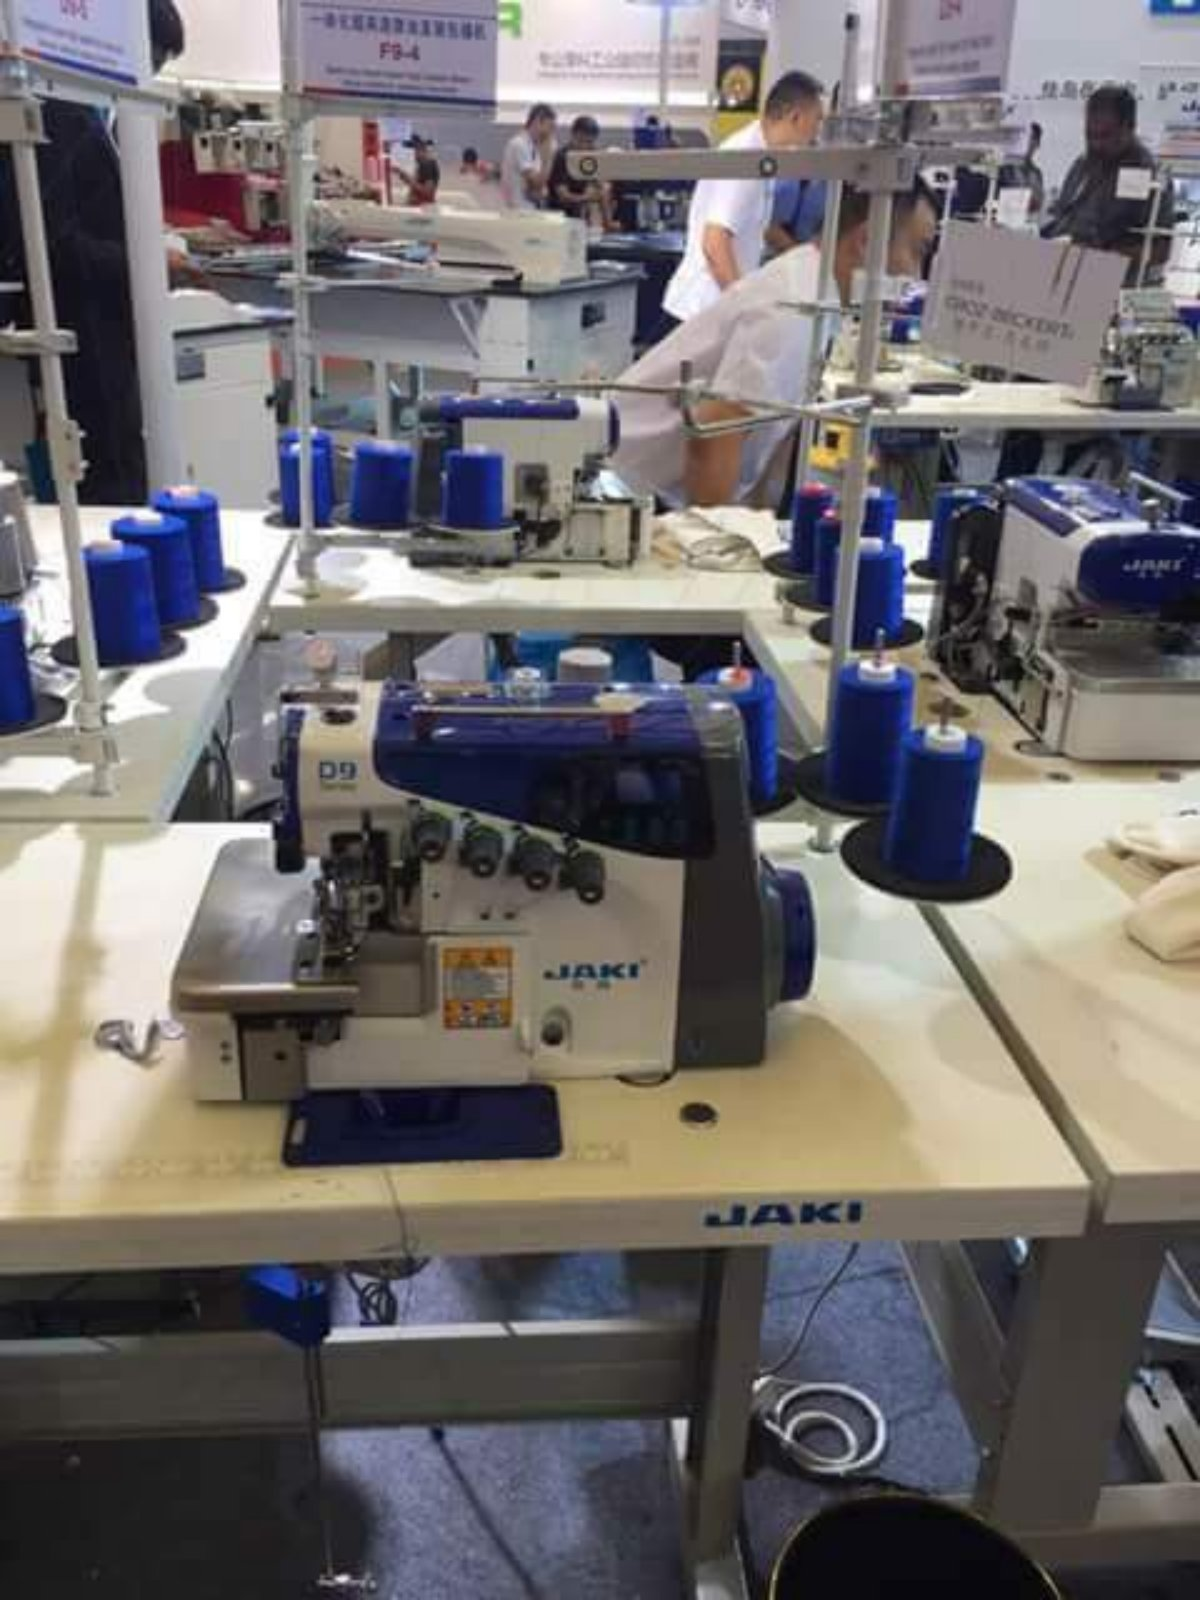 Brand Jaki Overlock Sewing Machine!